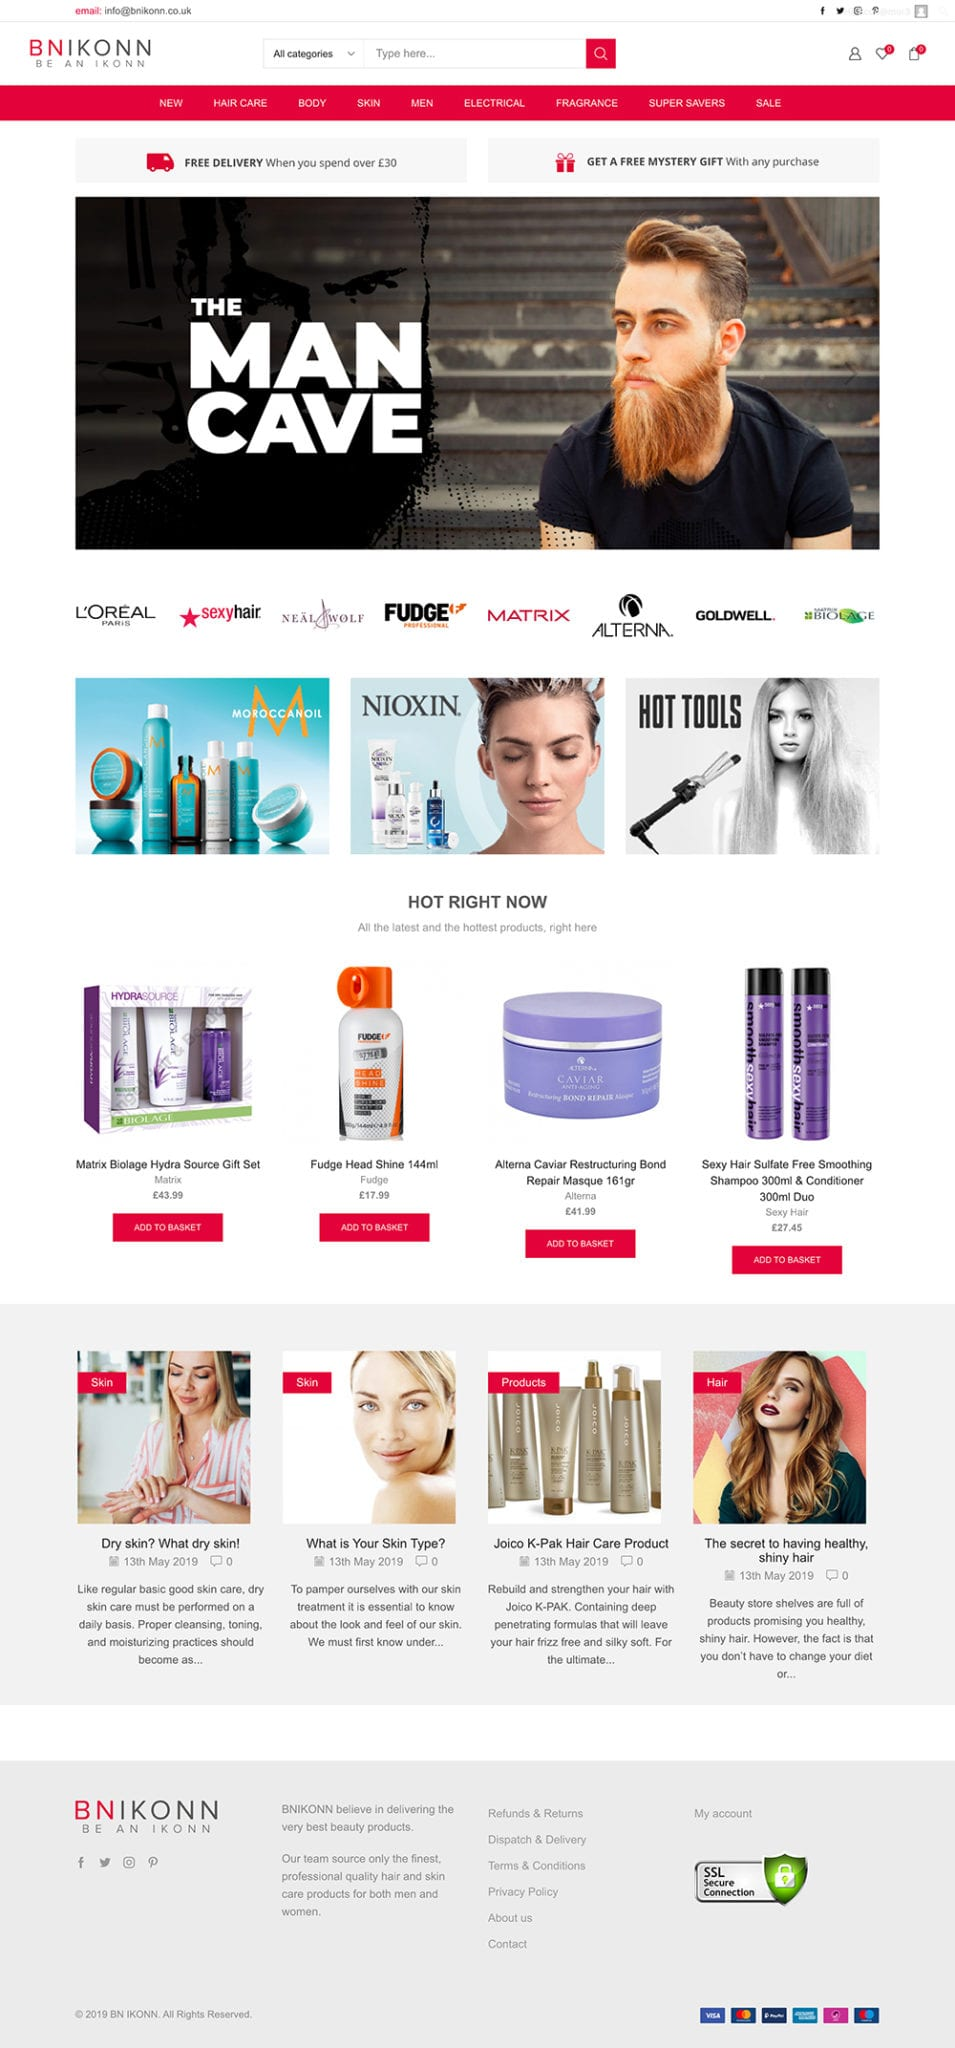 BNIKONN hair and beauty ecommerce website